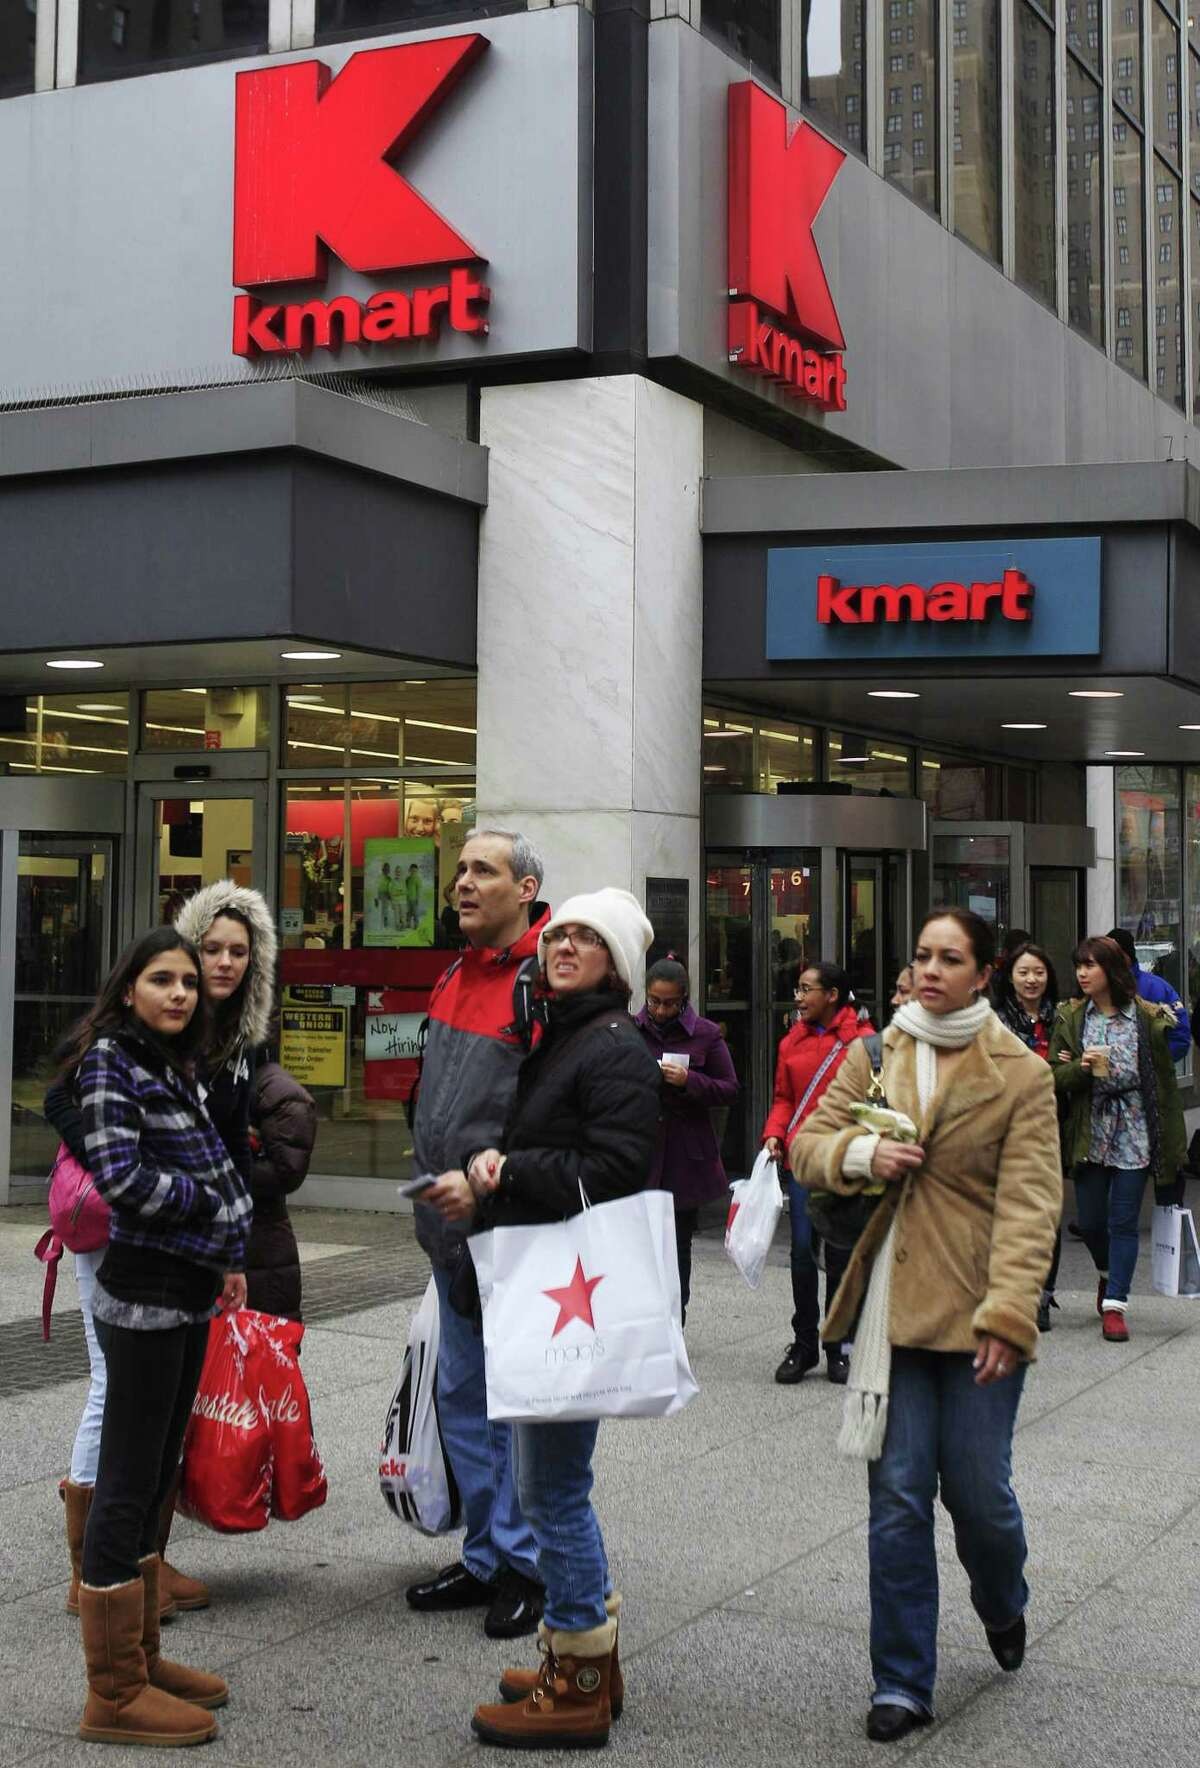 In this 2011 file photo, pedestrians pass a Kmart store location in New York. On Friday, Sears Holdings Corp. announced that it detected a data breach at its Kmart stores that started in August 2014, affecting certain customers' credit and debit card accounts. The data theft at Kmart is the latest in a string of data thefts that have hit several big retailers, including Target, Supervalu and Home Depot.